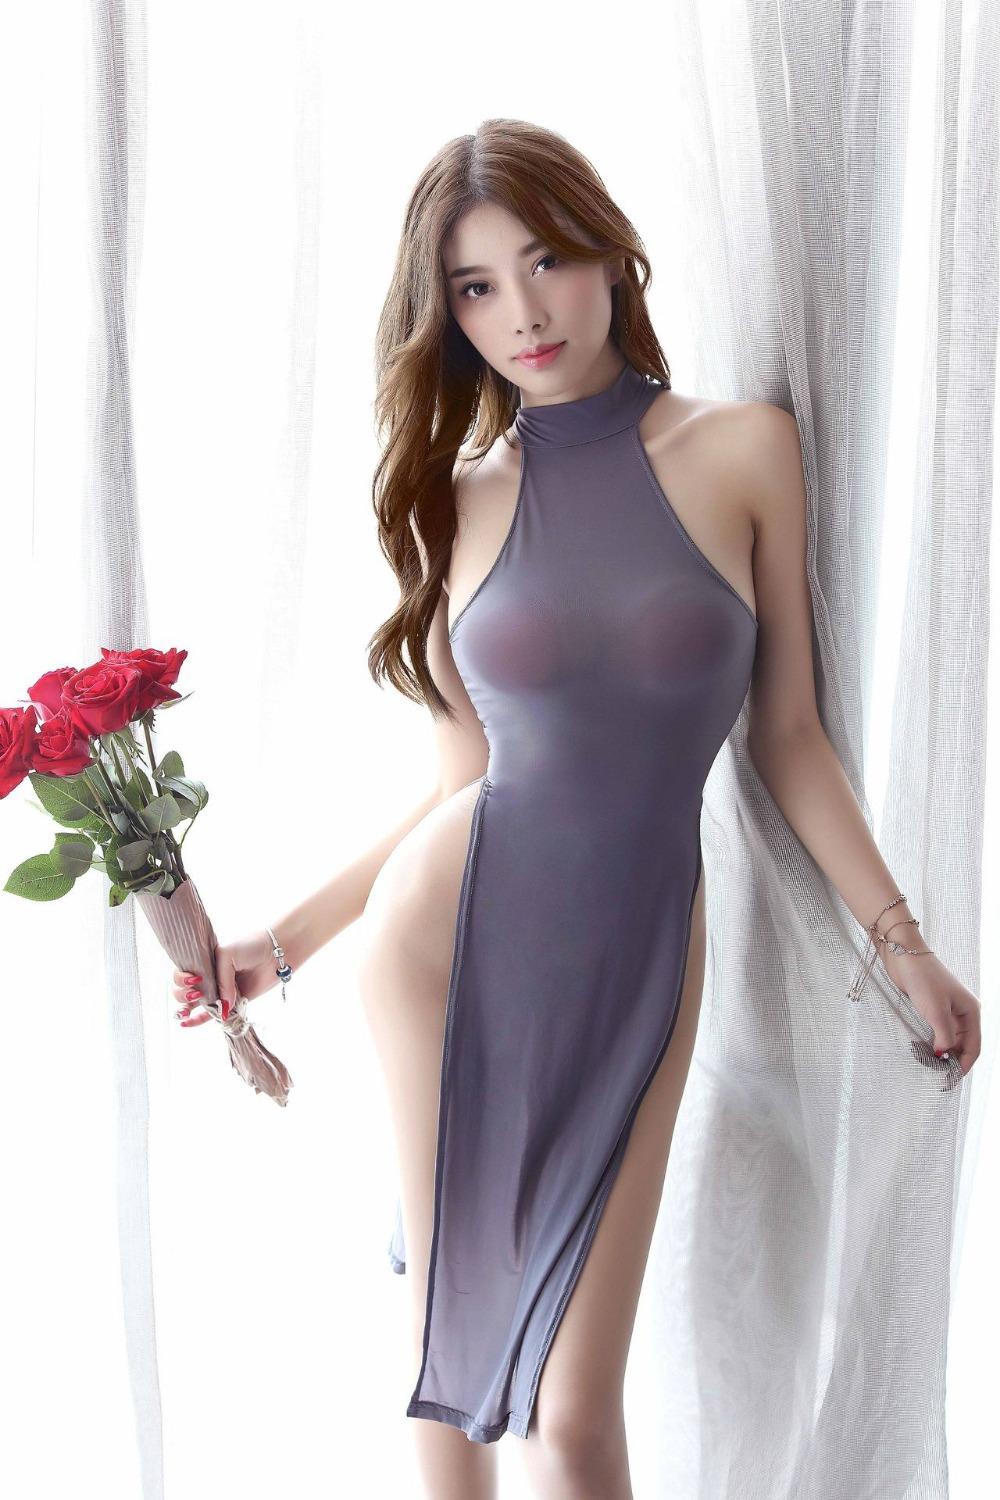 Erotic Women Lingerie Temptation Porno Perspective Satin Silky High Split Cheongsam Babydoll